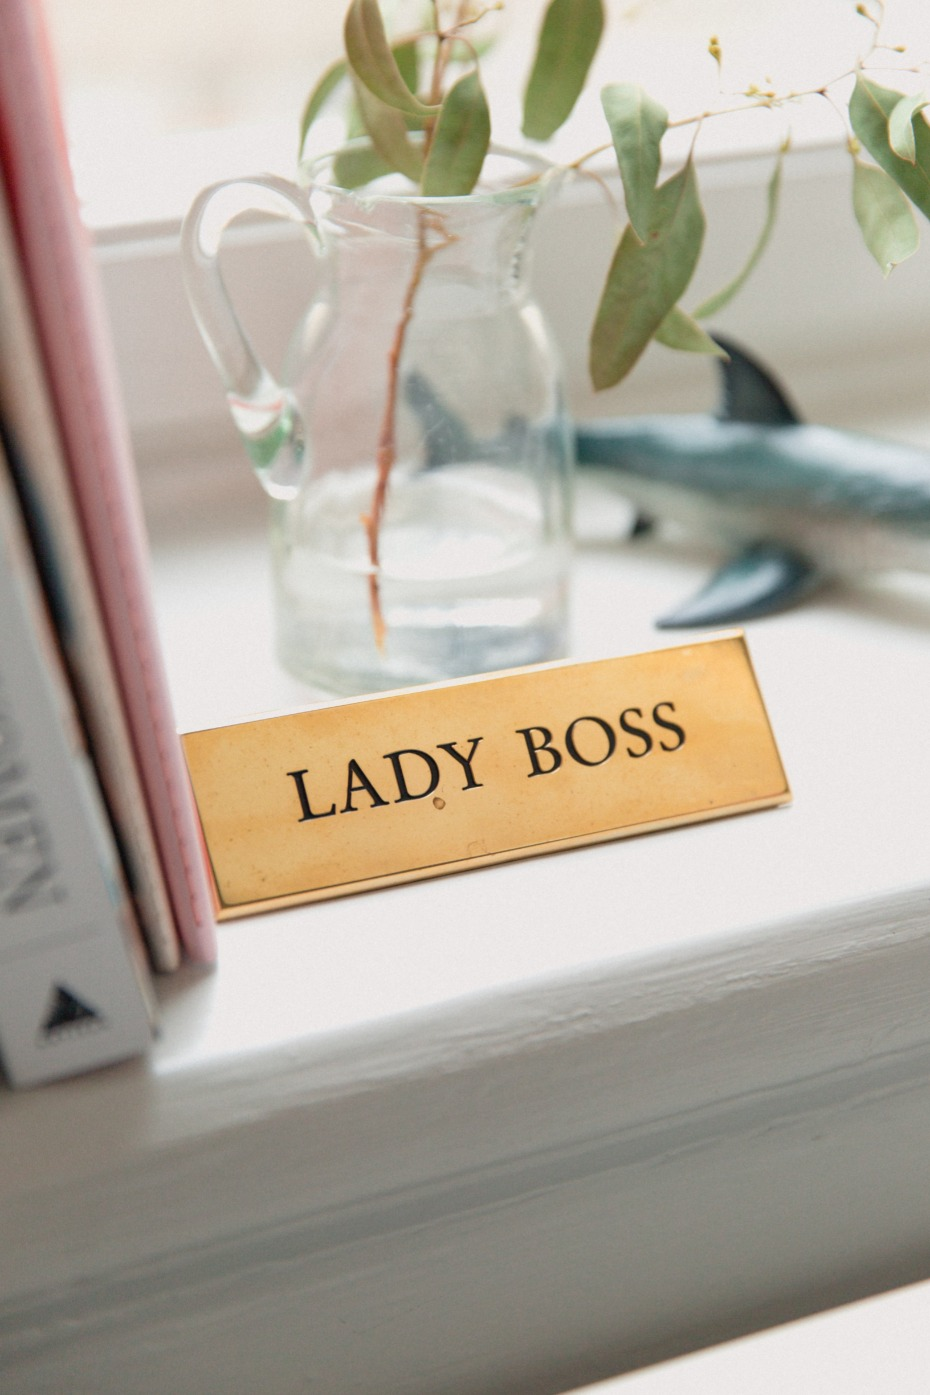 Lady Boss at Work